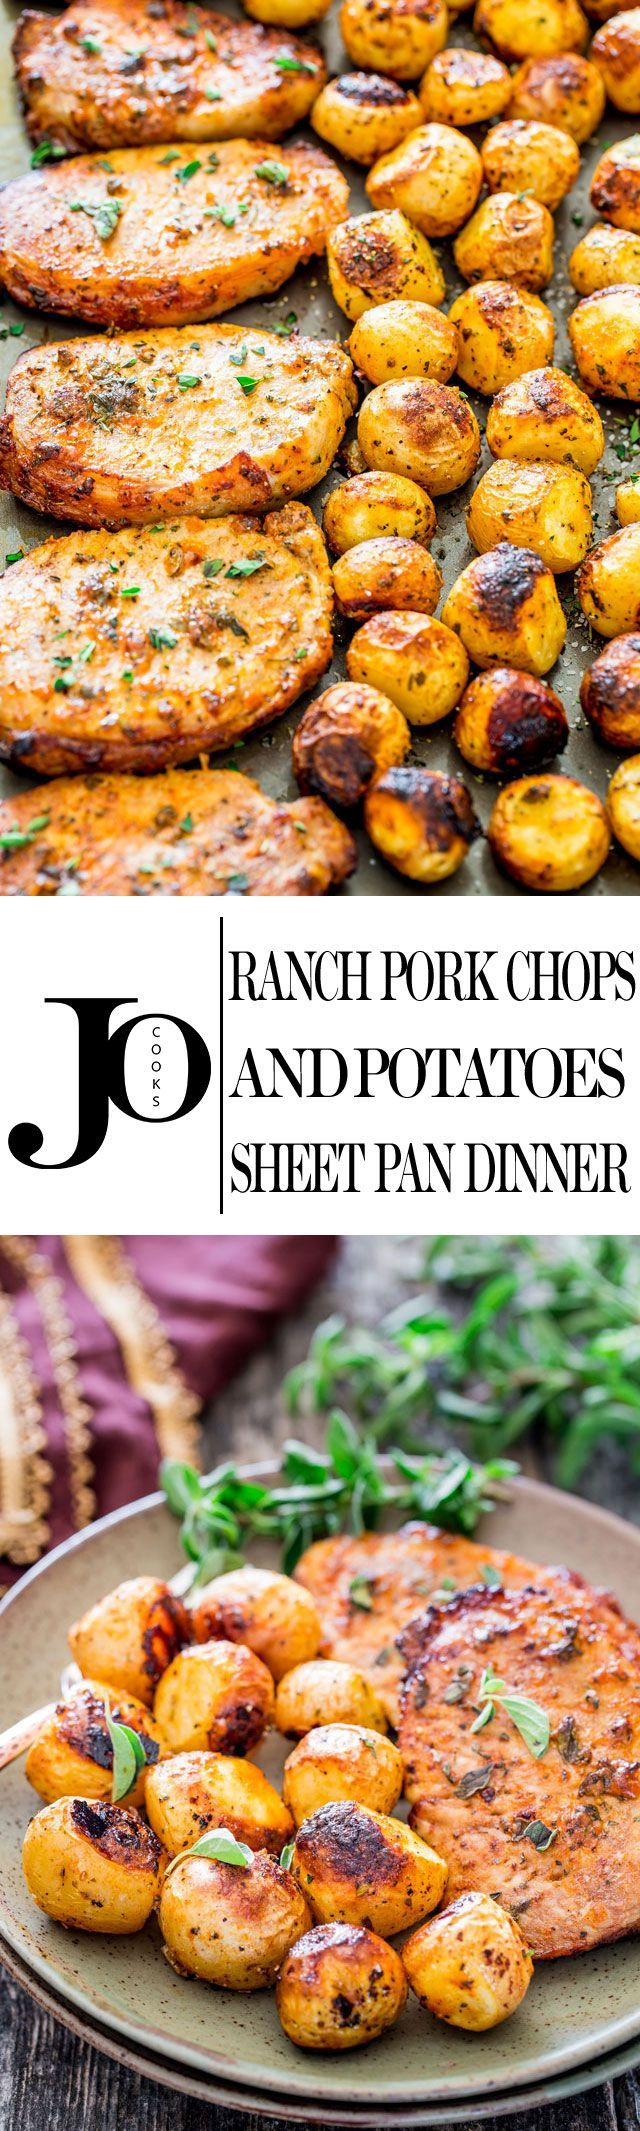 Ranch Pork Chops and Potatoes Sheet Pan Dinner - get out your sheet pan to make this delicious and easy dinner with ranch pork chops and…